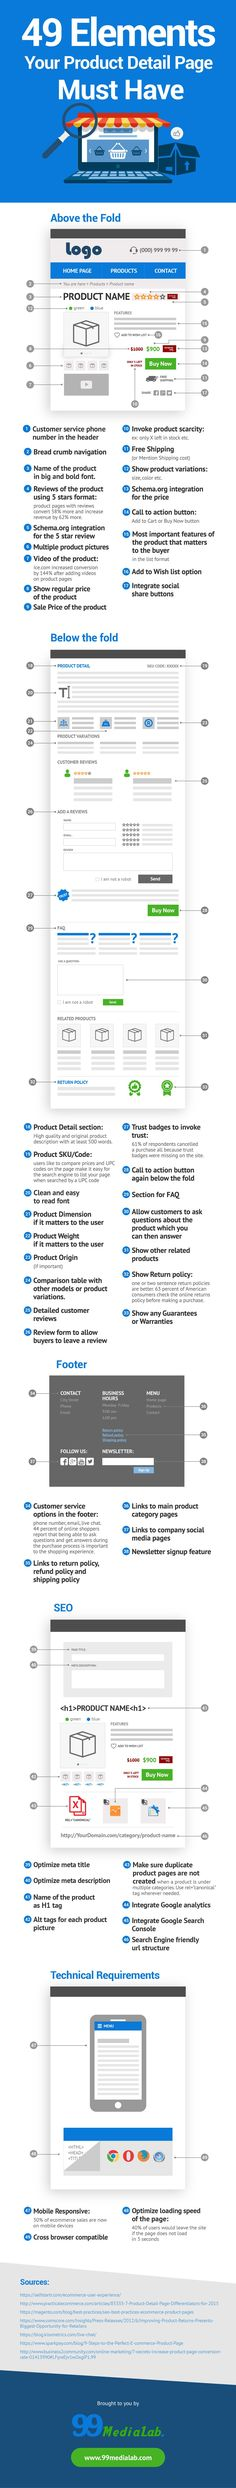 Simply selling a great product just won't cut it anymore, today retailers need to find various ways to make their products stand out among the crowd.  This infographic provides 49 elements that will ensure that your product detail page is up to the task of beating your competitors.